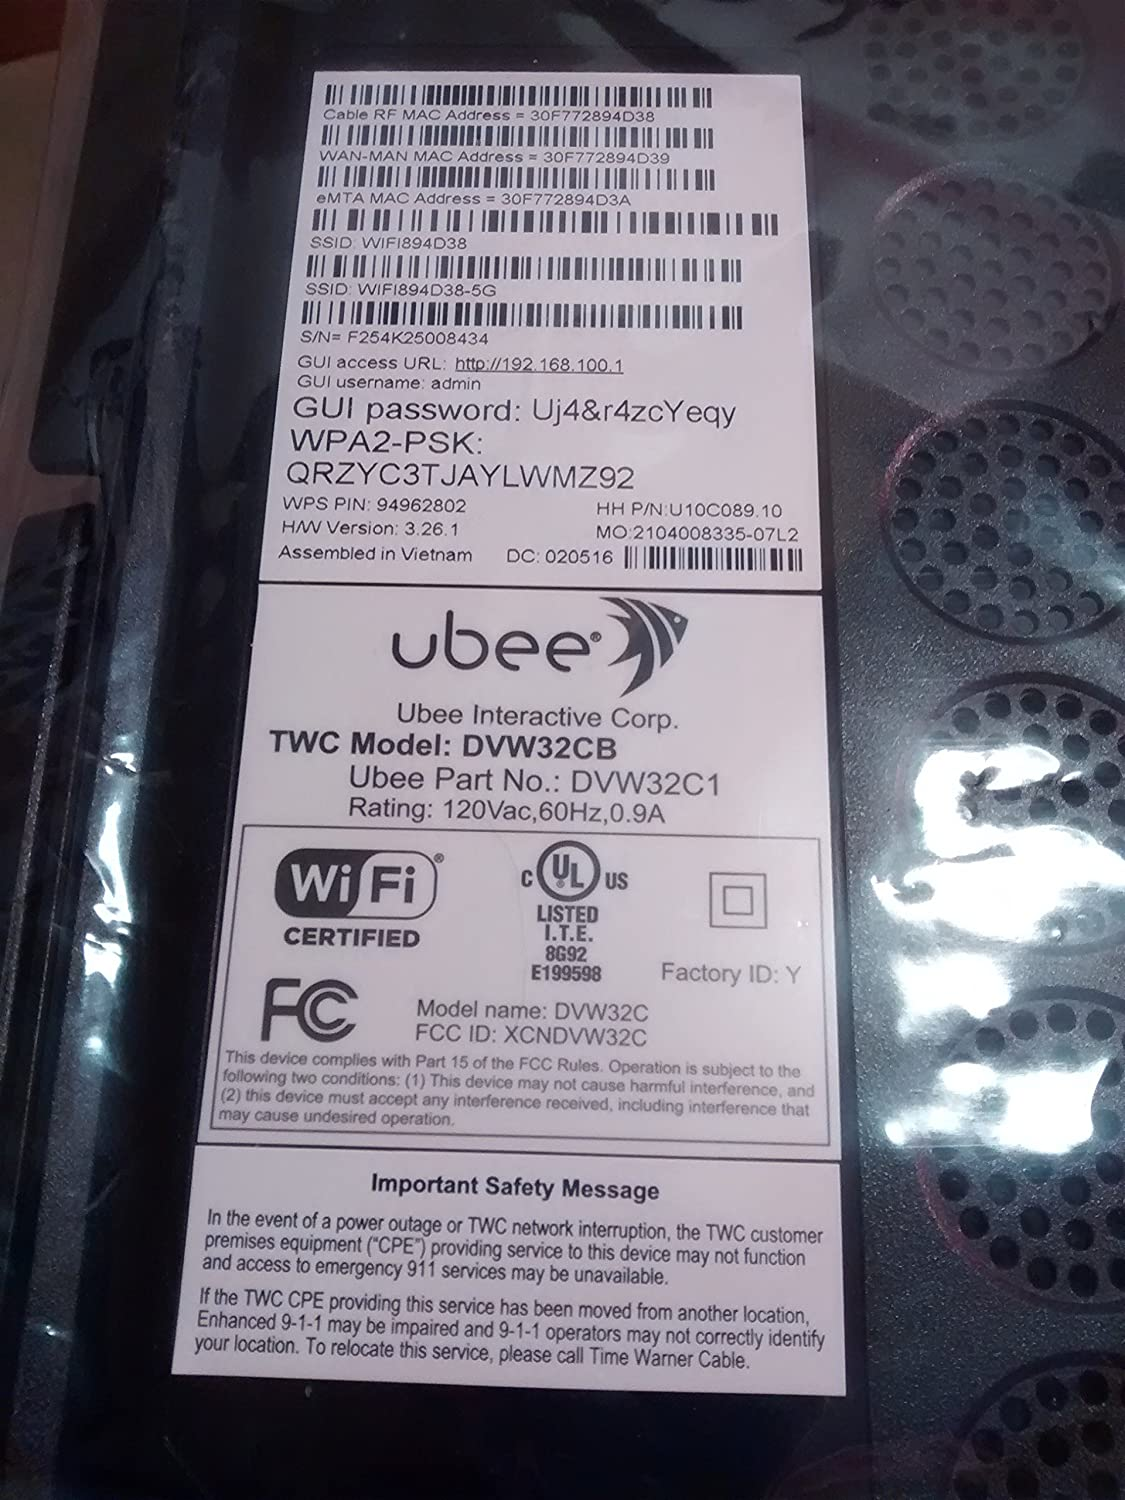 Ubee Modem Mac Address | Ritchie